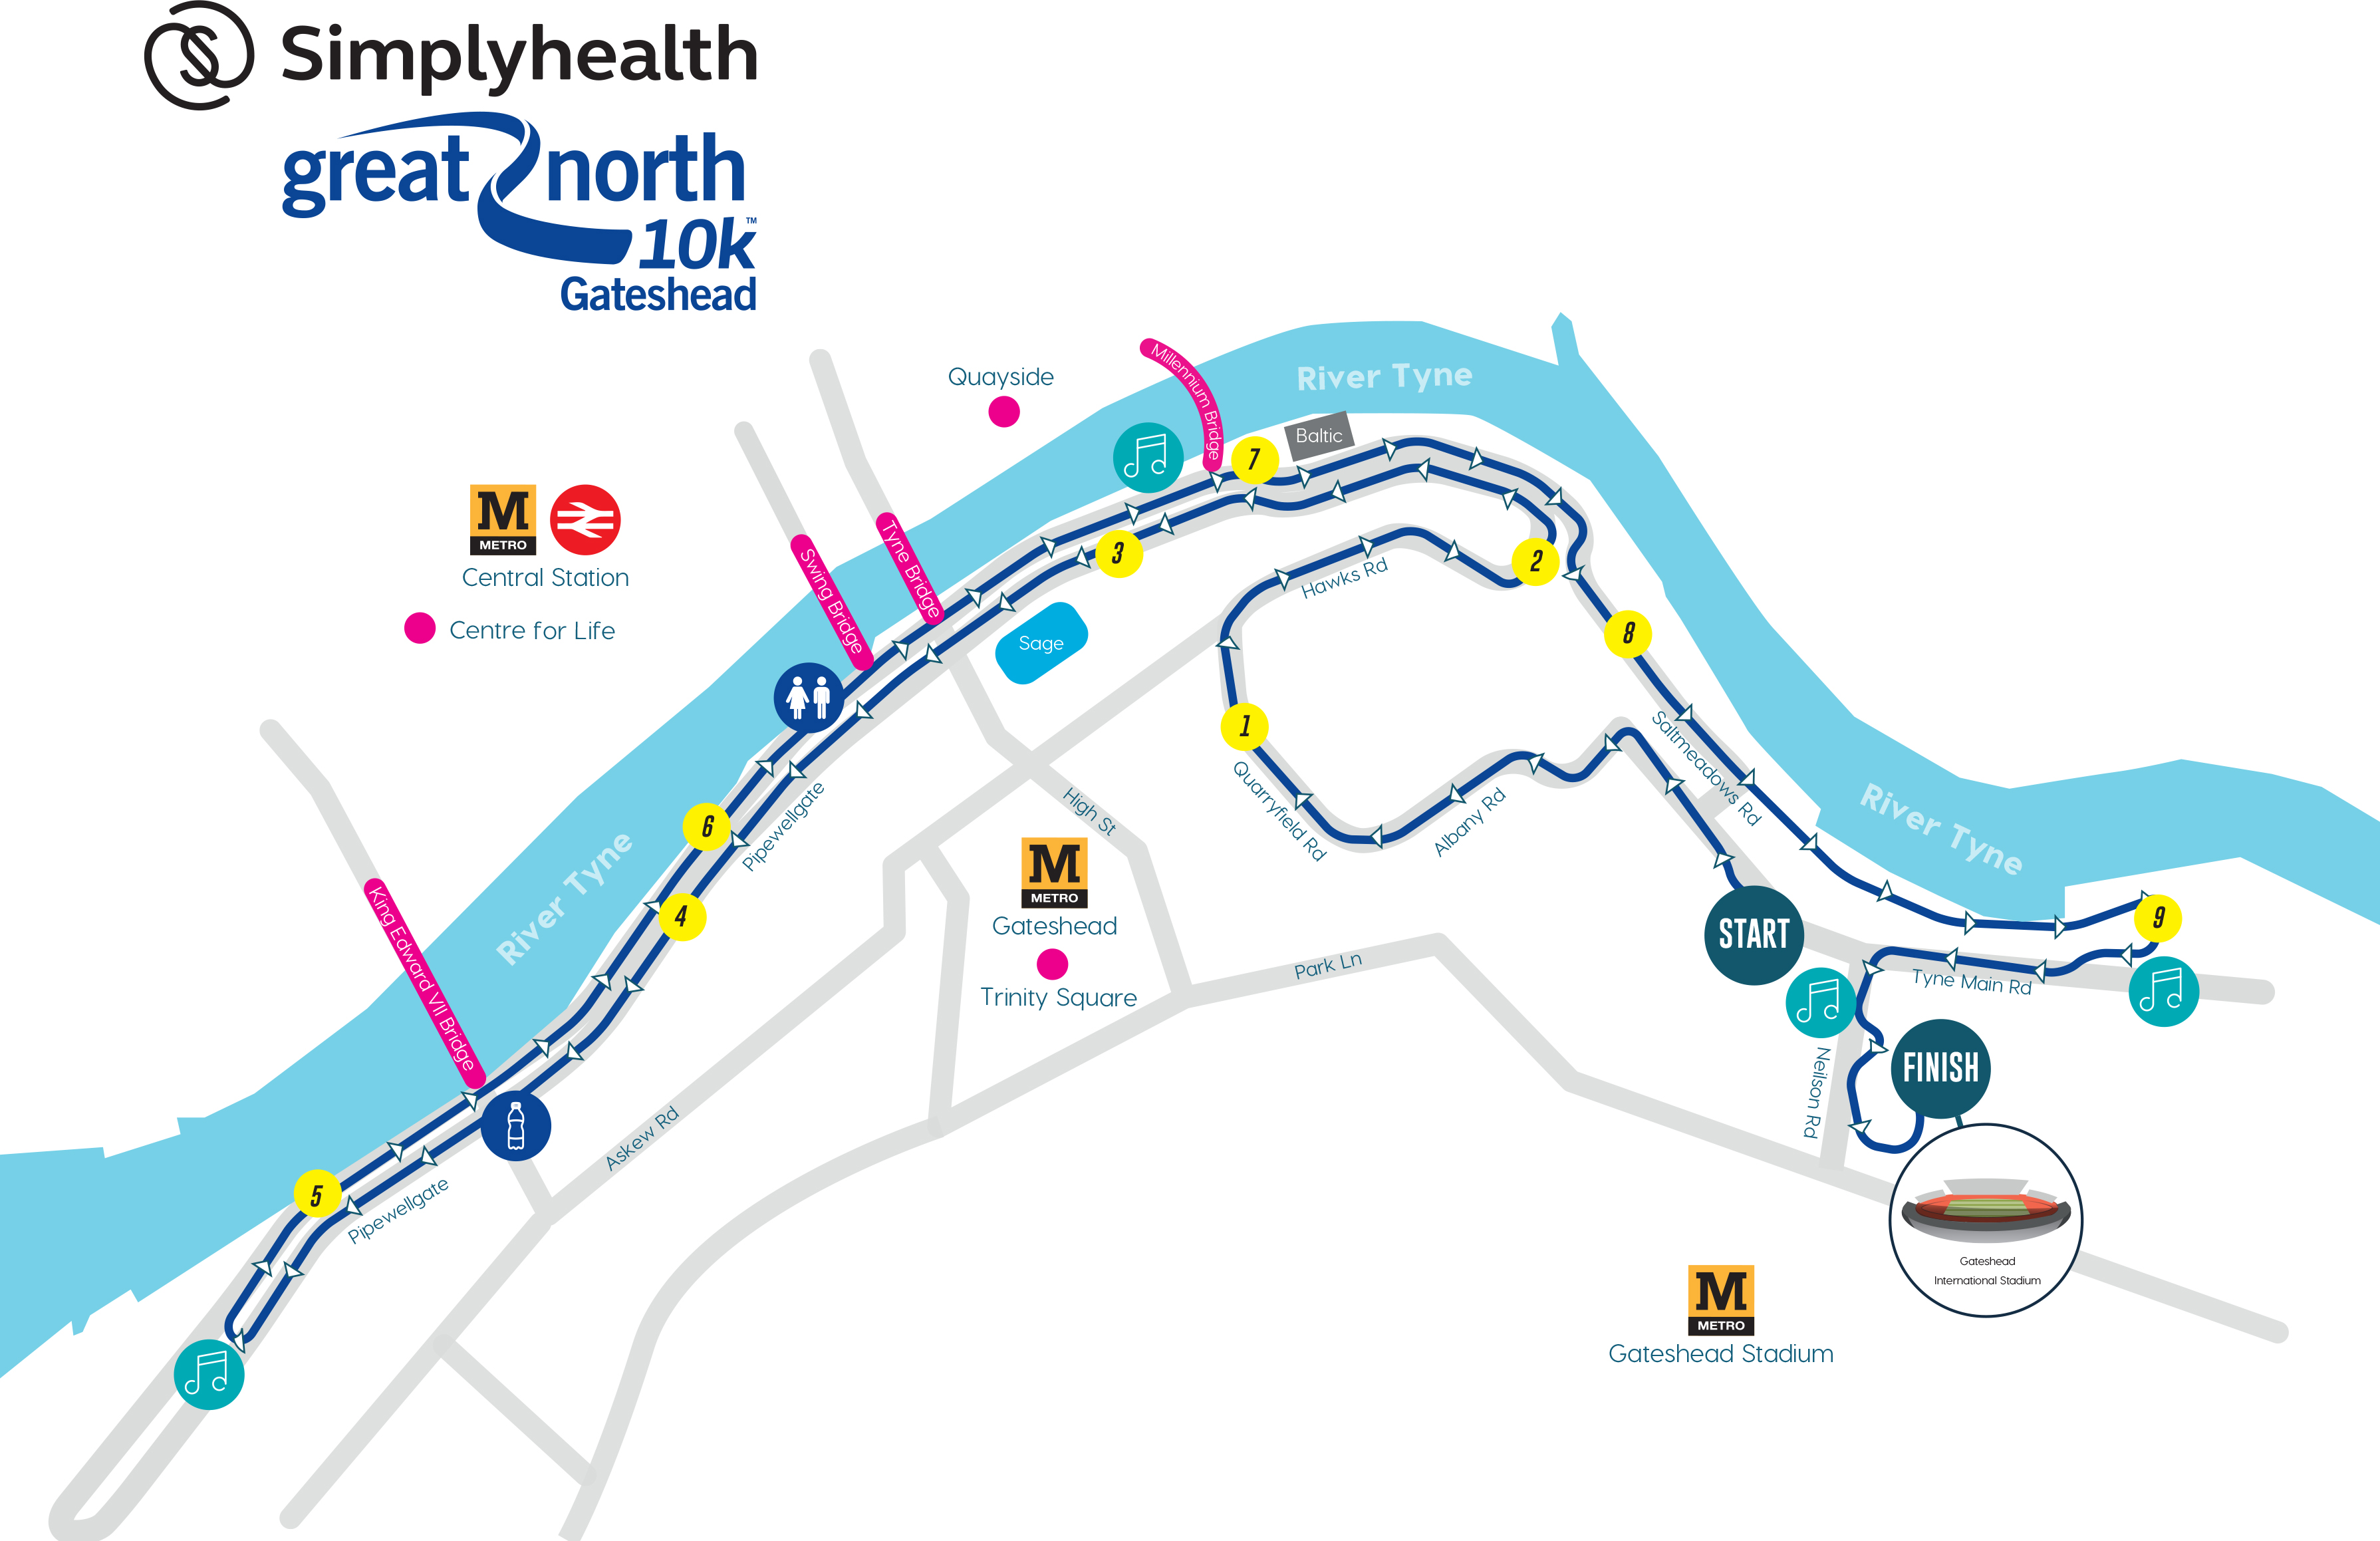 Great North 10k run course 2019